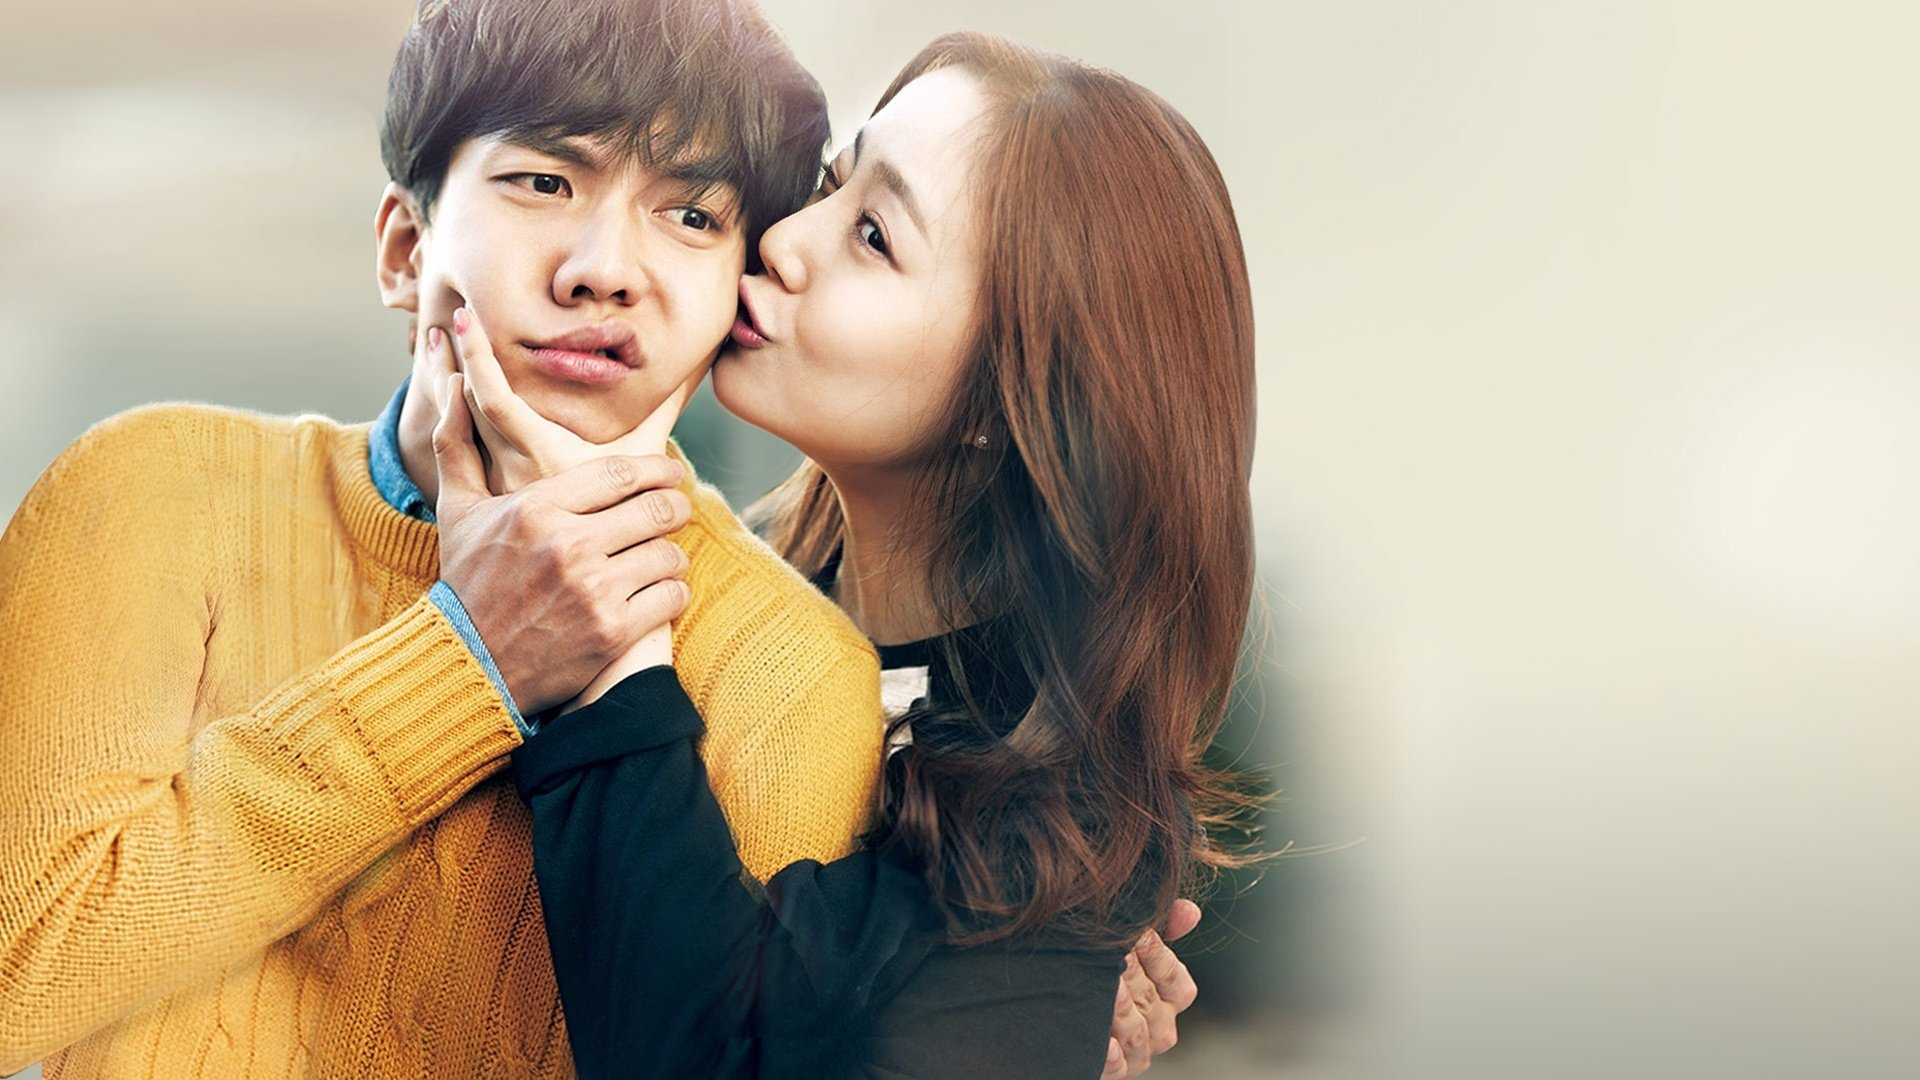 5 Reasons You Need To Watch Love Forecast, Starring Lee Seung Gi And Moon Chae Won